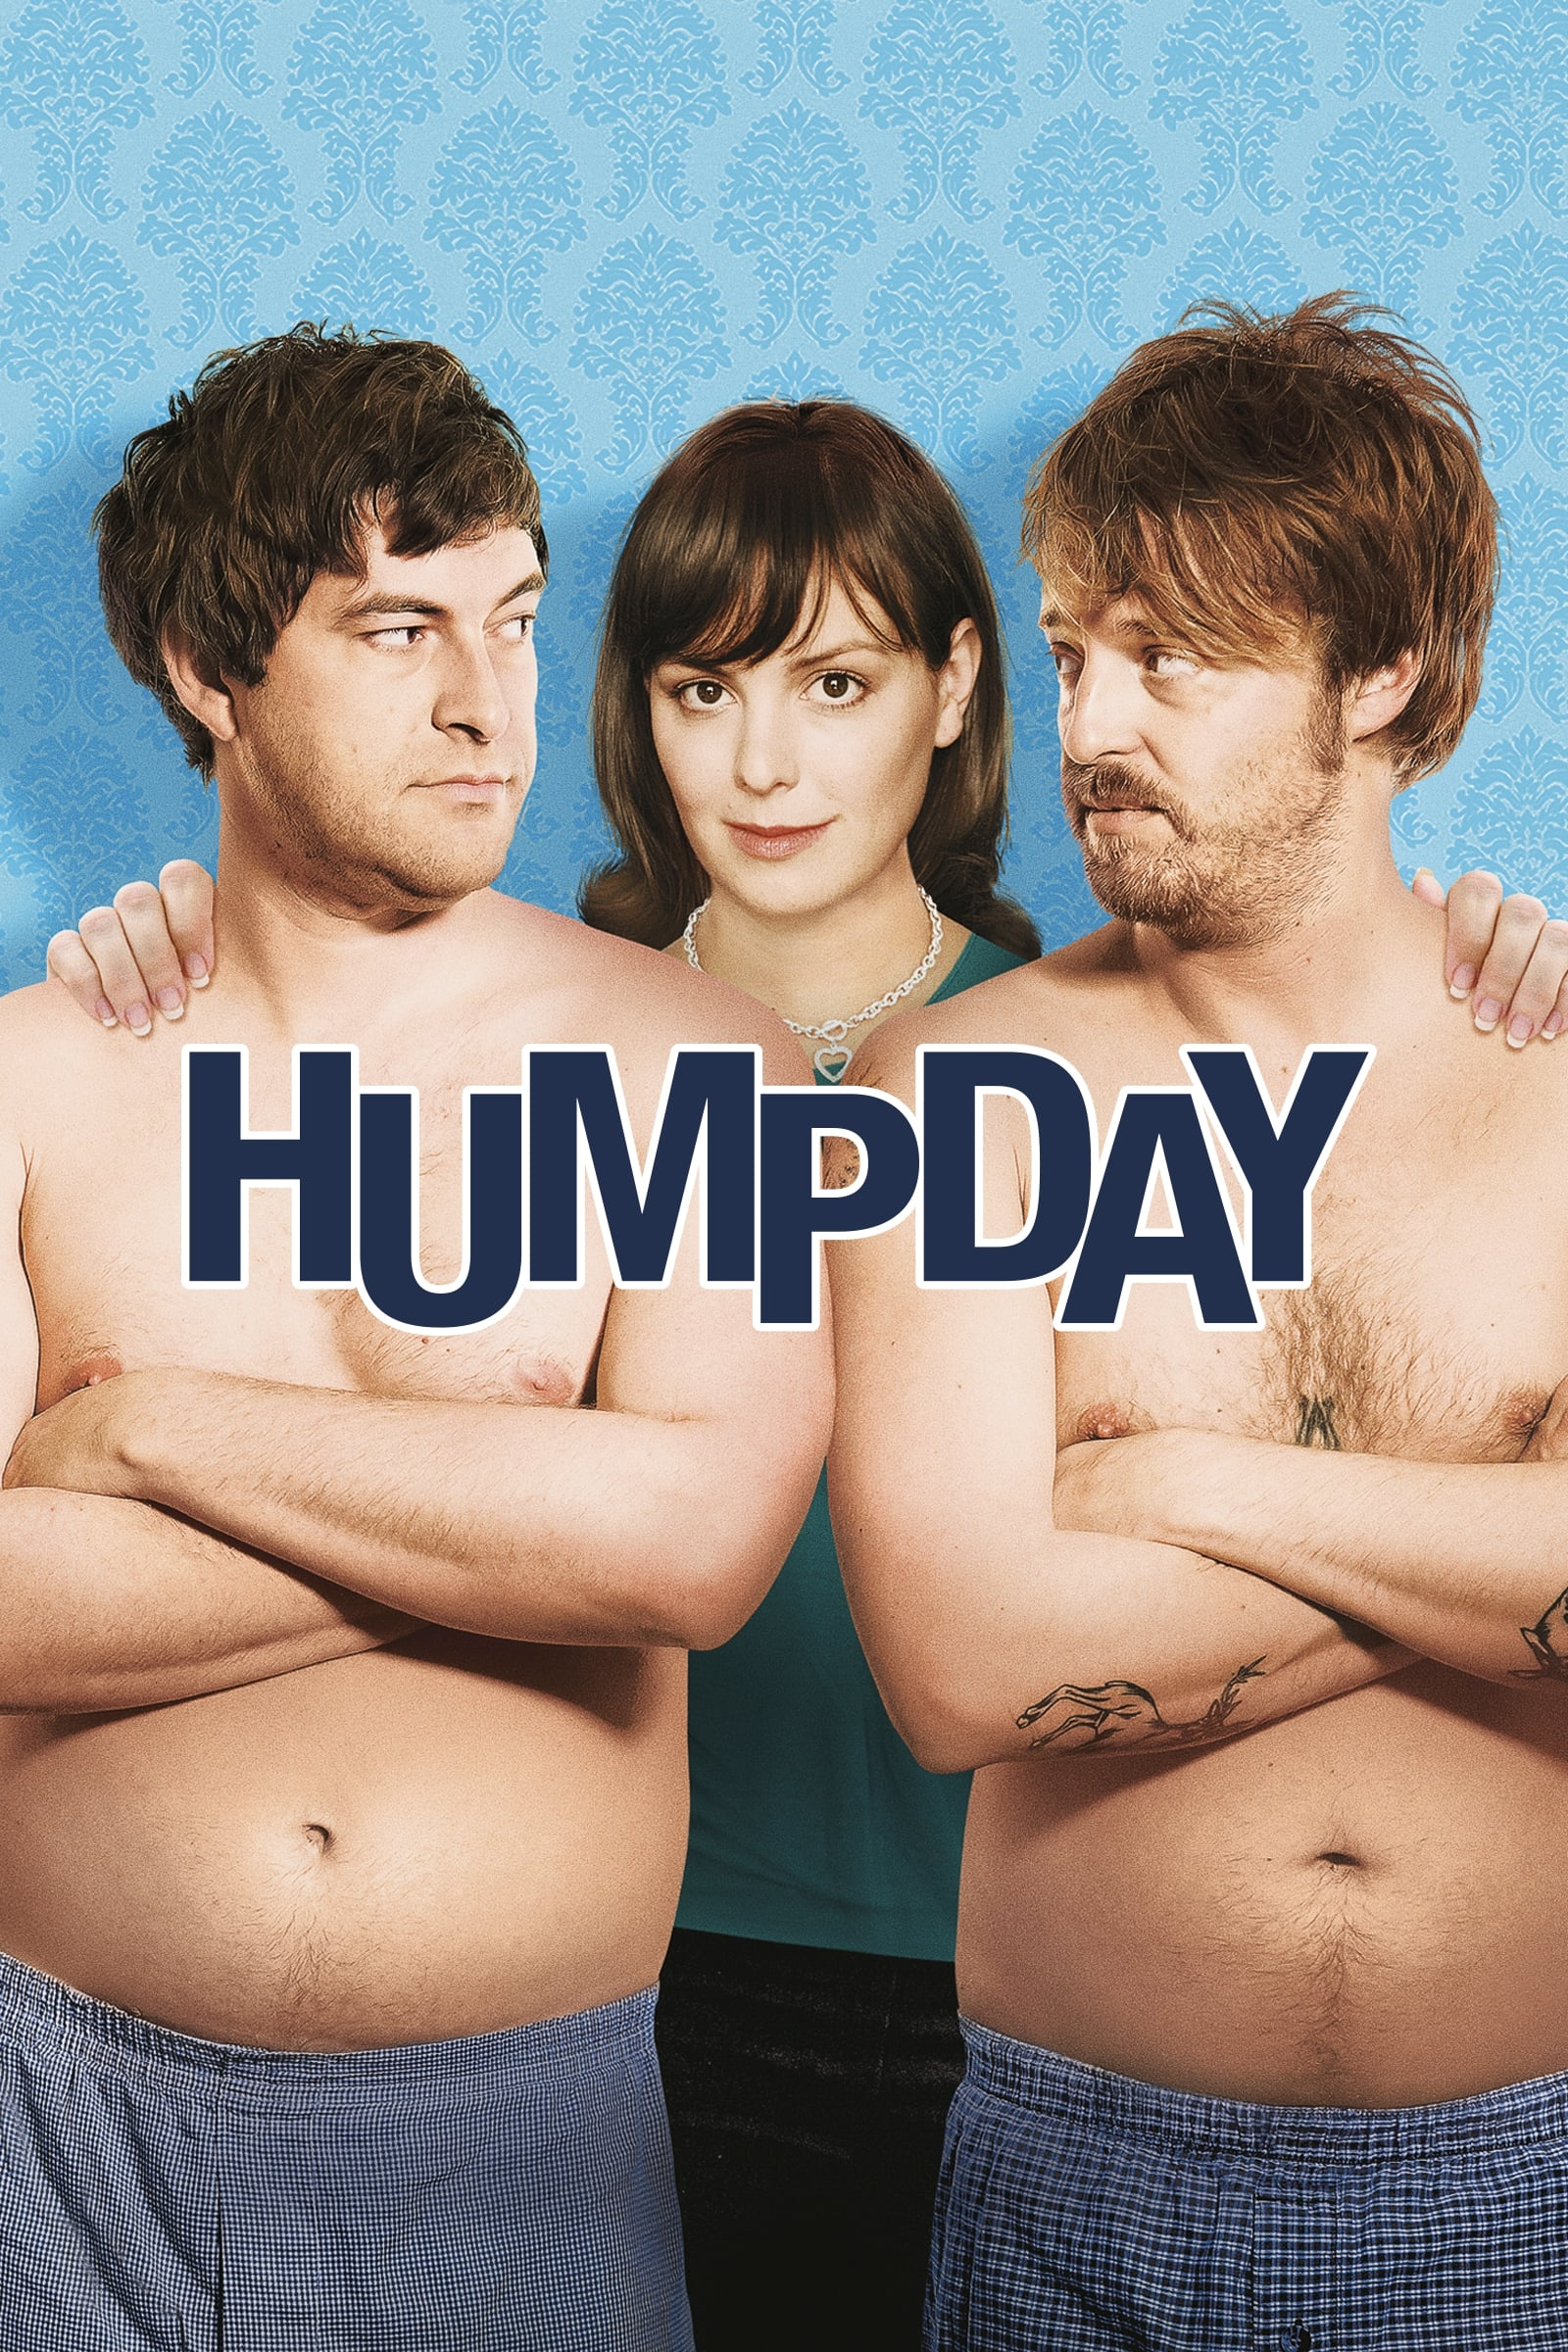 Humpday on FREECABLE TV